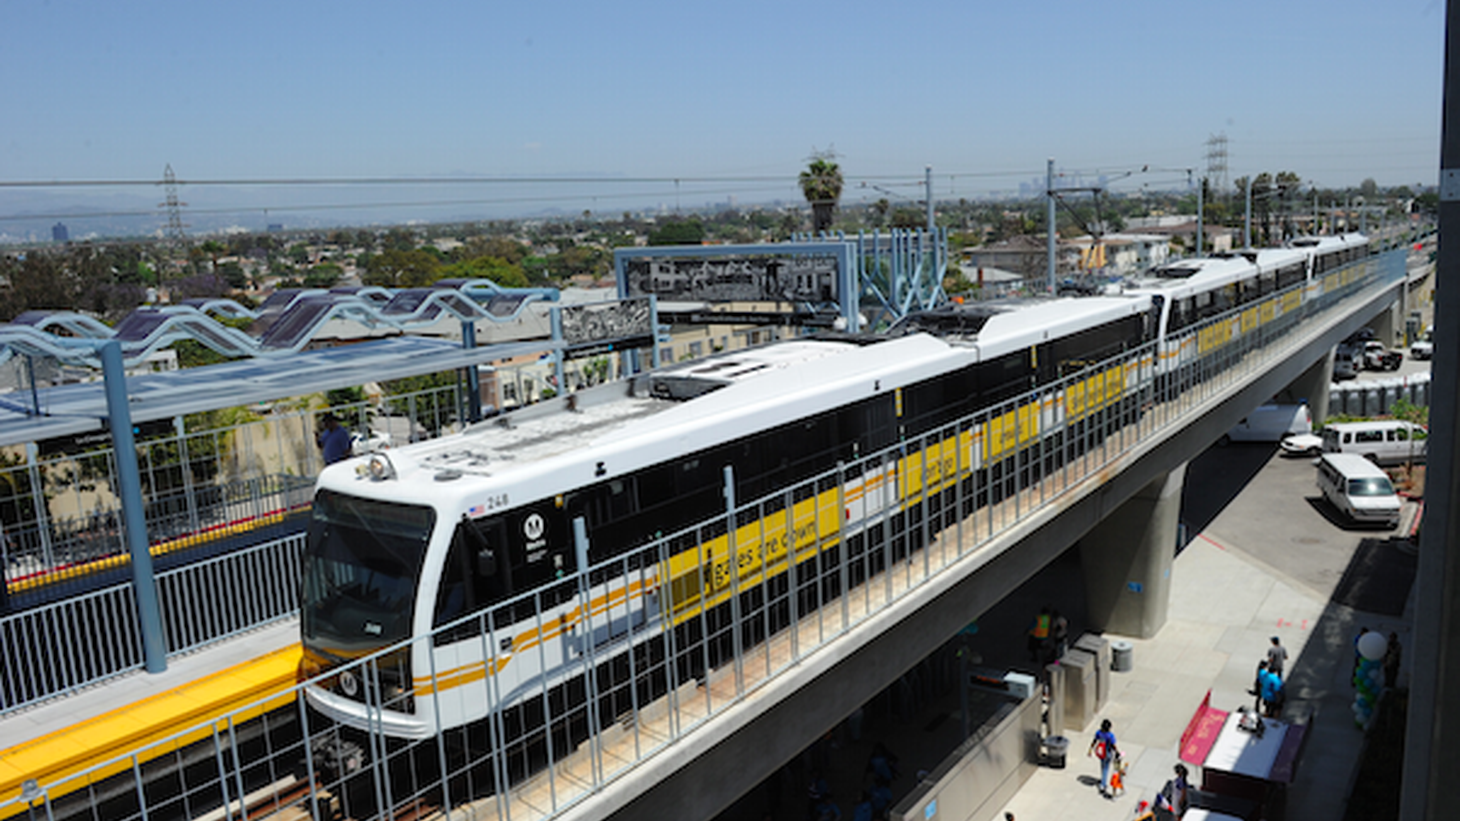 L.A. City Council will vote Tuesday on a plan that could pave the way for up to 6,000 new housing units near the Expo Line by 2035. It's a model city leaders hope to emulate all over the city: dense housing near public transportation.